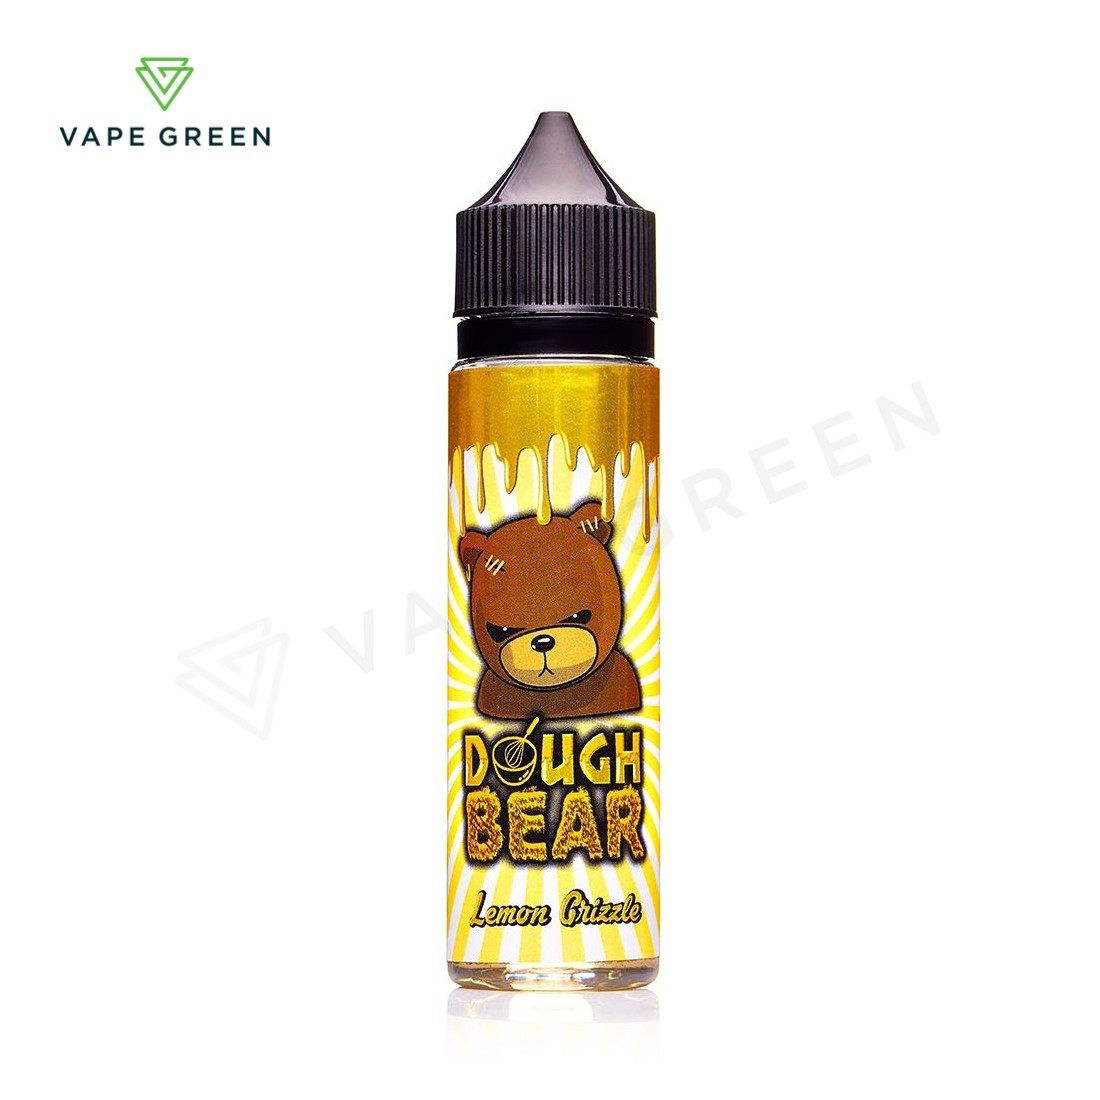 Lemon Grizzle E-Liquid by Dough Bear 50ml